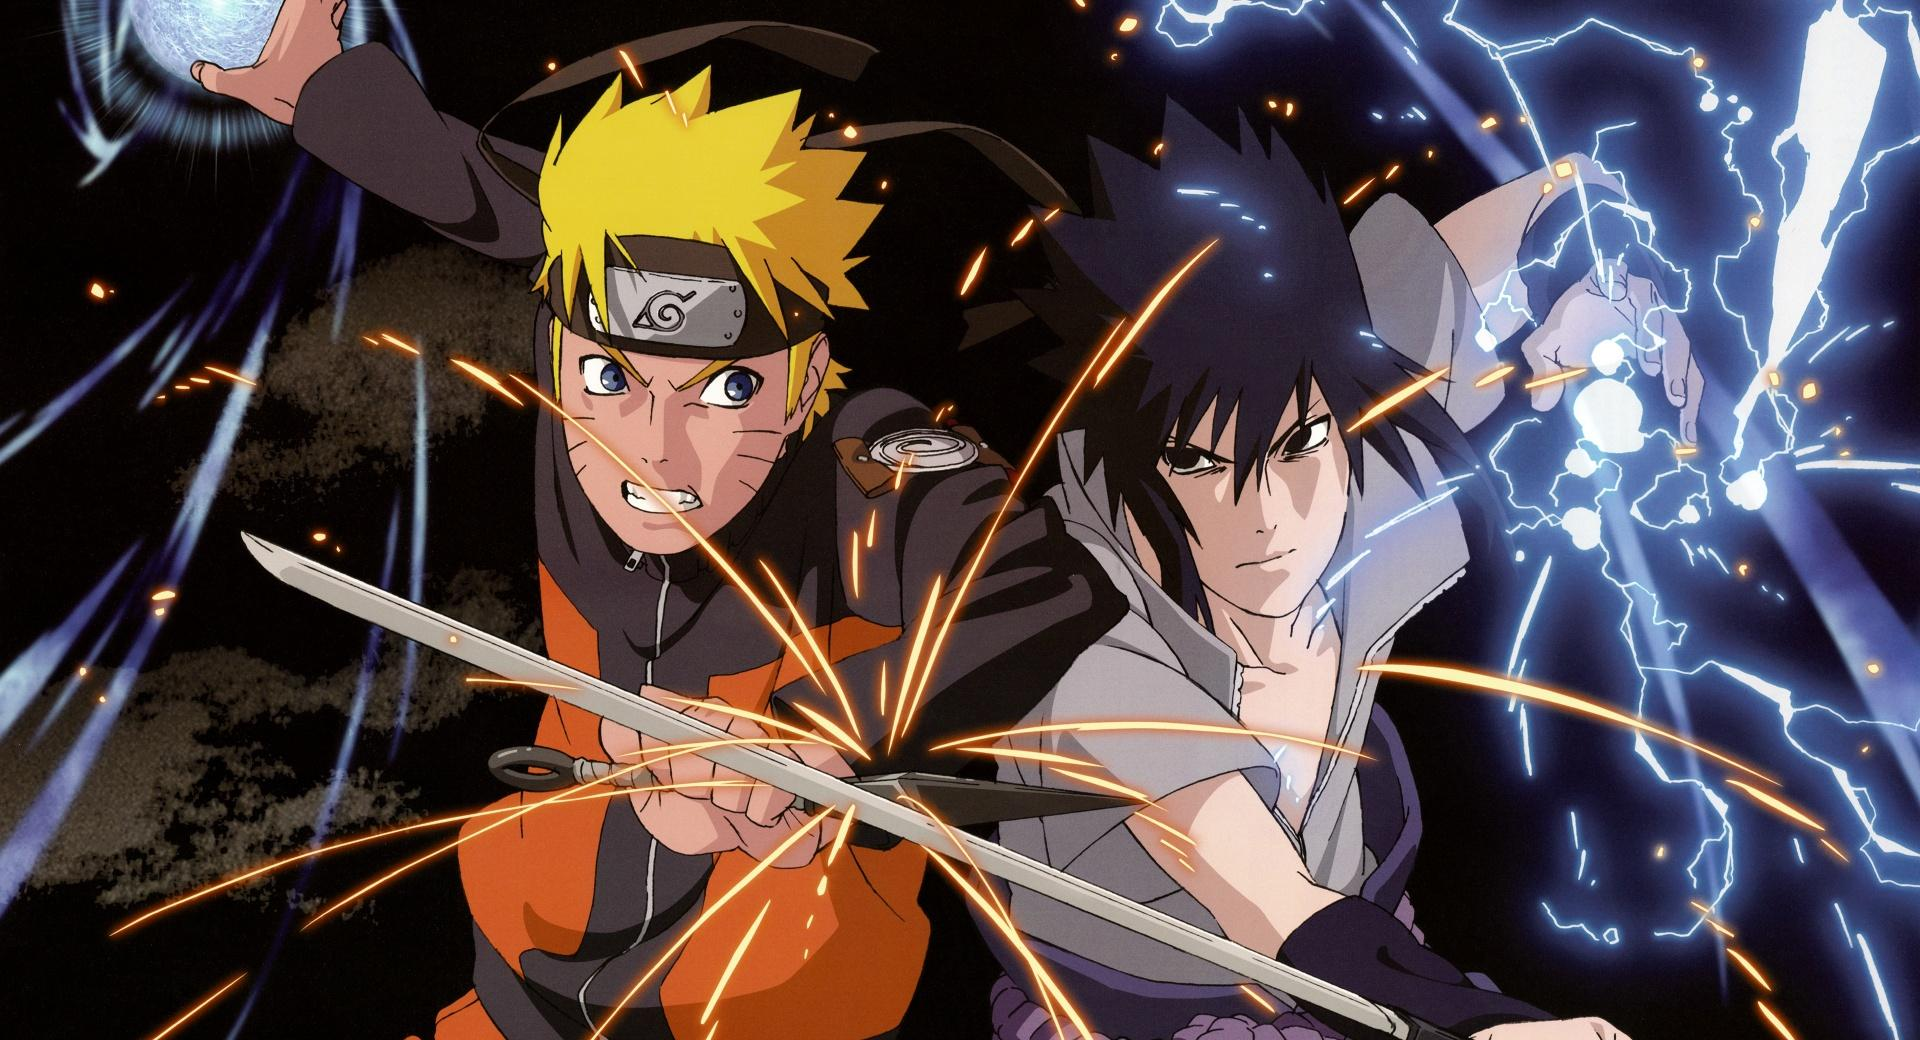 Naruto vs. Sasuke wallpapers HD quality